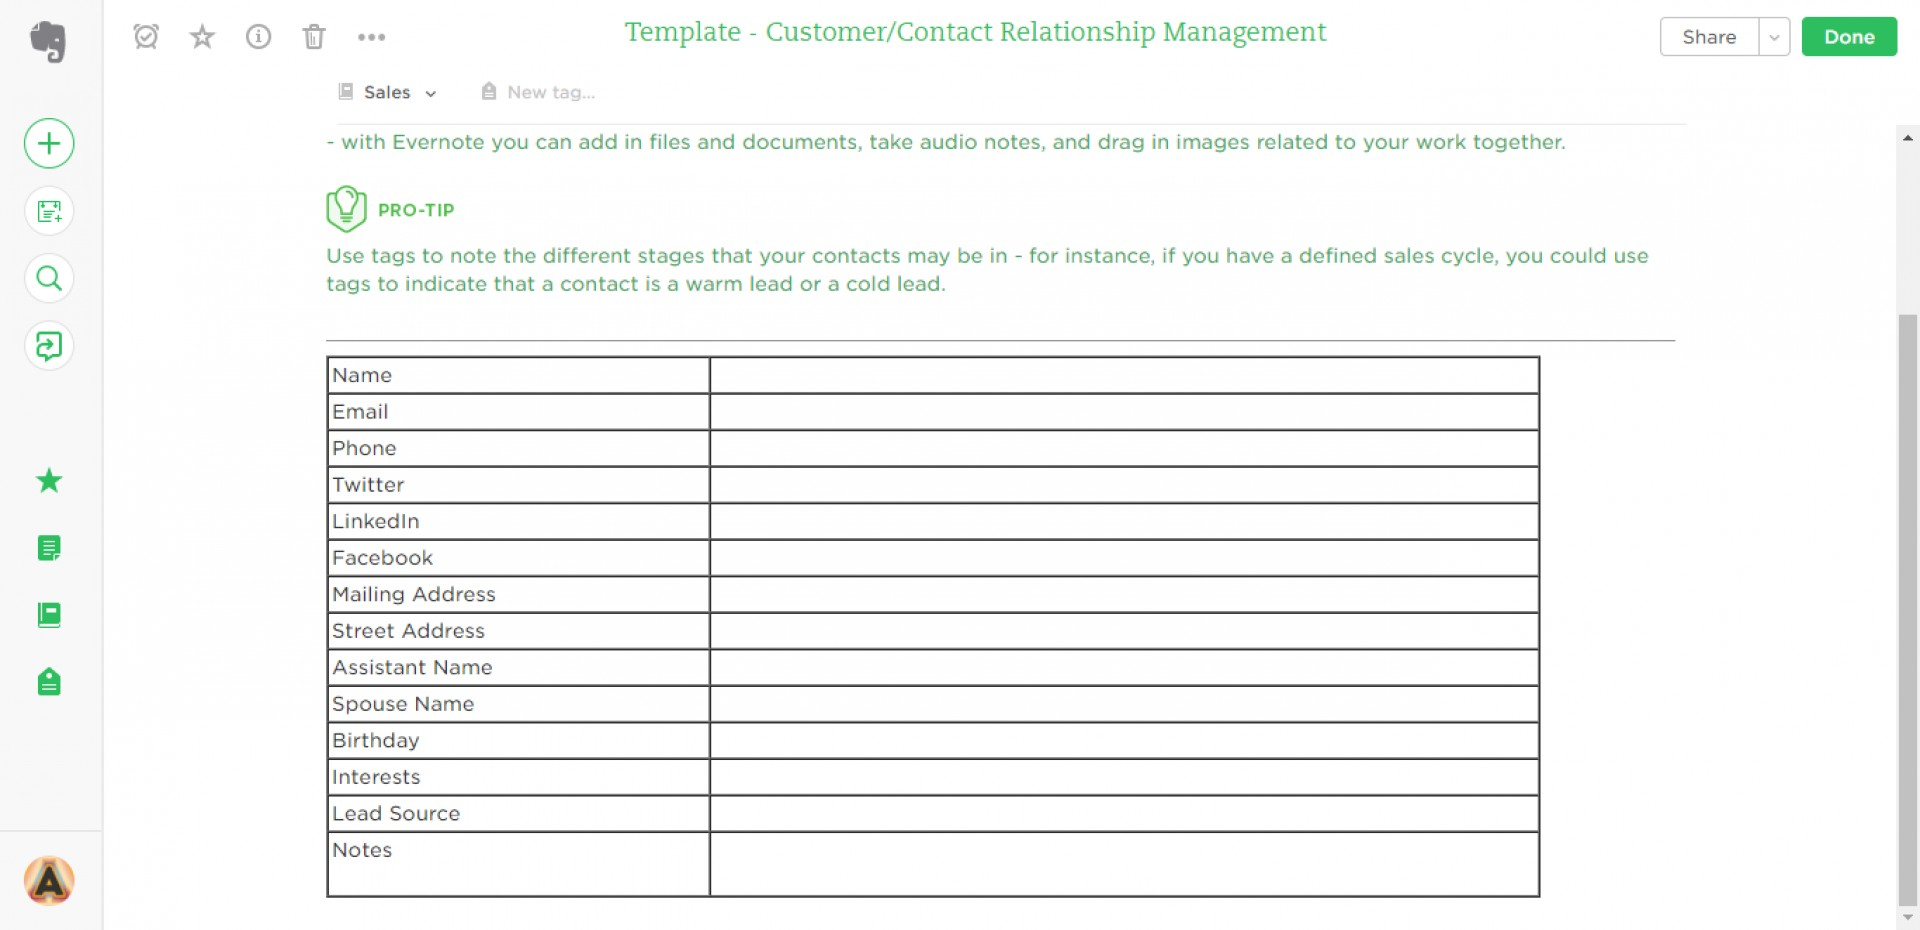 007 Contact Relationship Management Evernote Templates Research Paper Note Cards Template Astounding For Example Of Notecards 1920